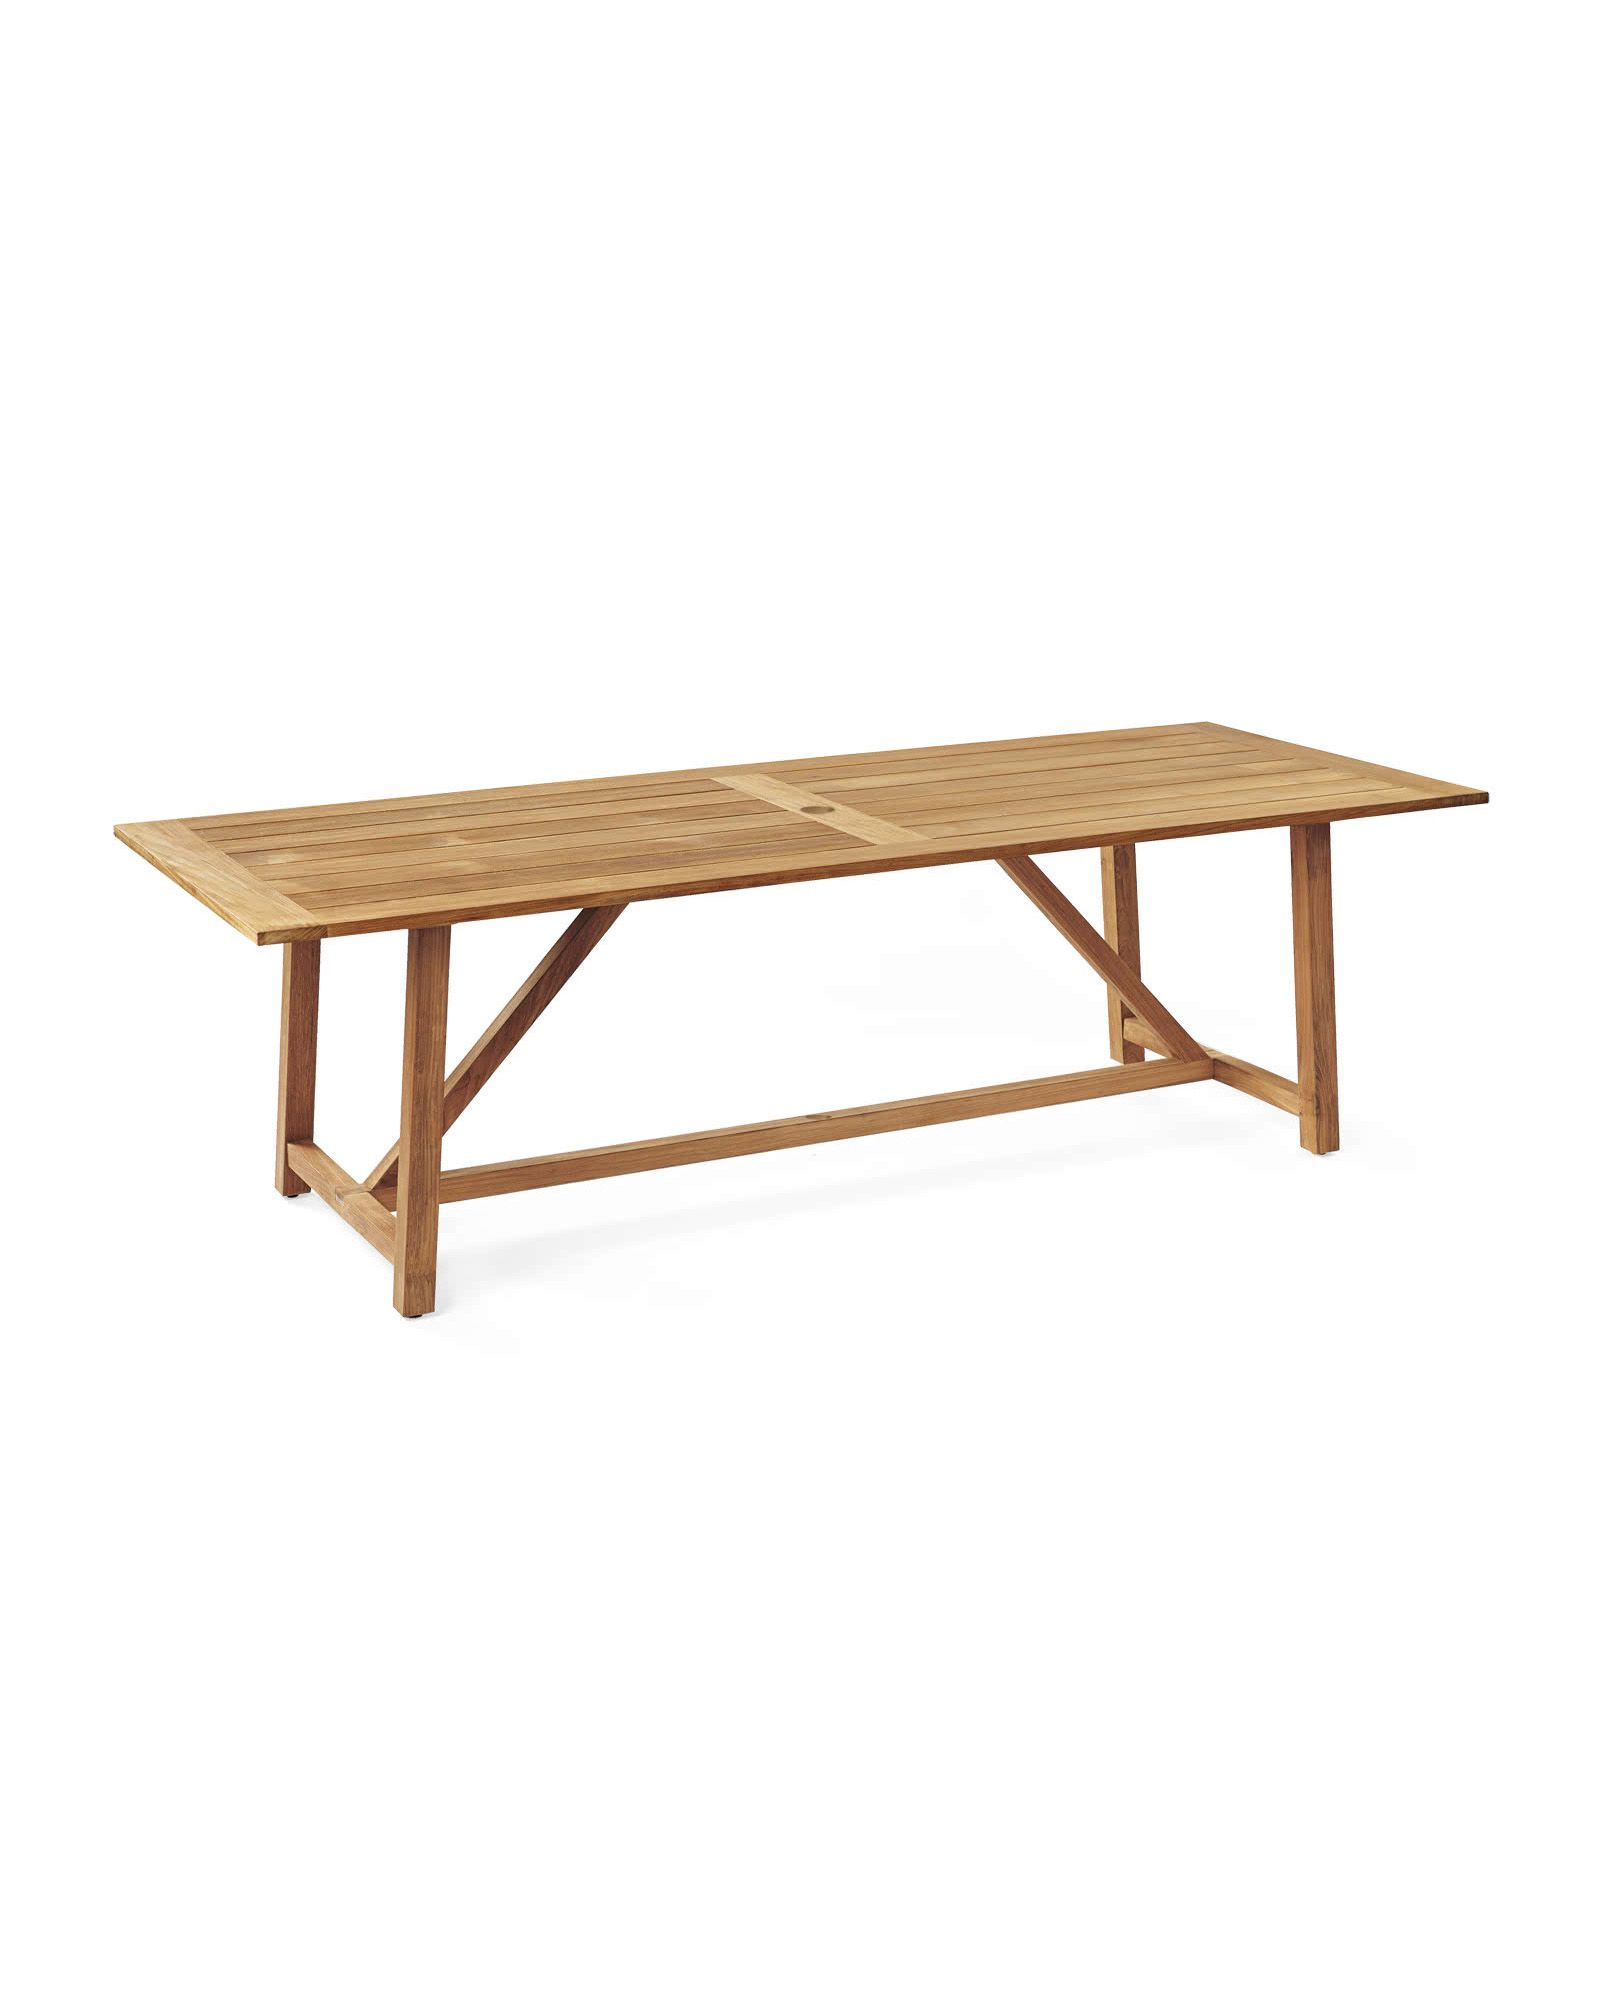 Crosby Teak Dining Table Tables Serena And Lily In 2020 With